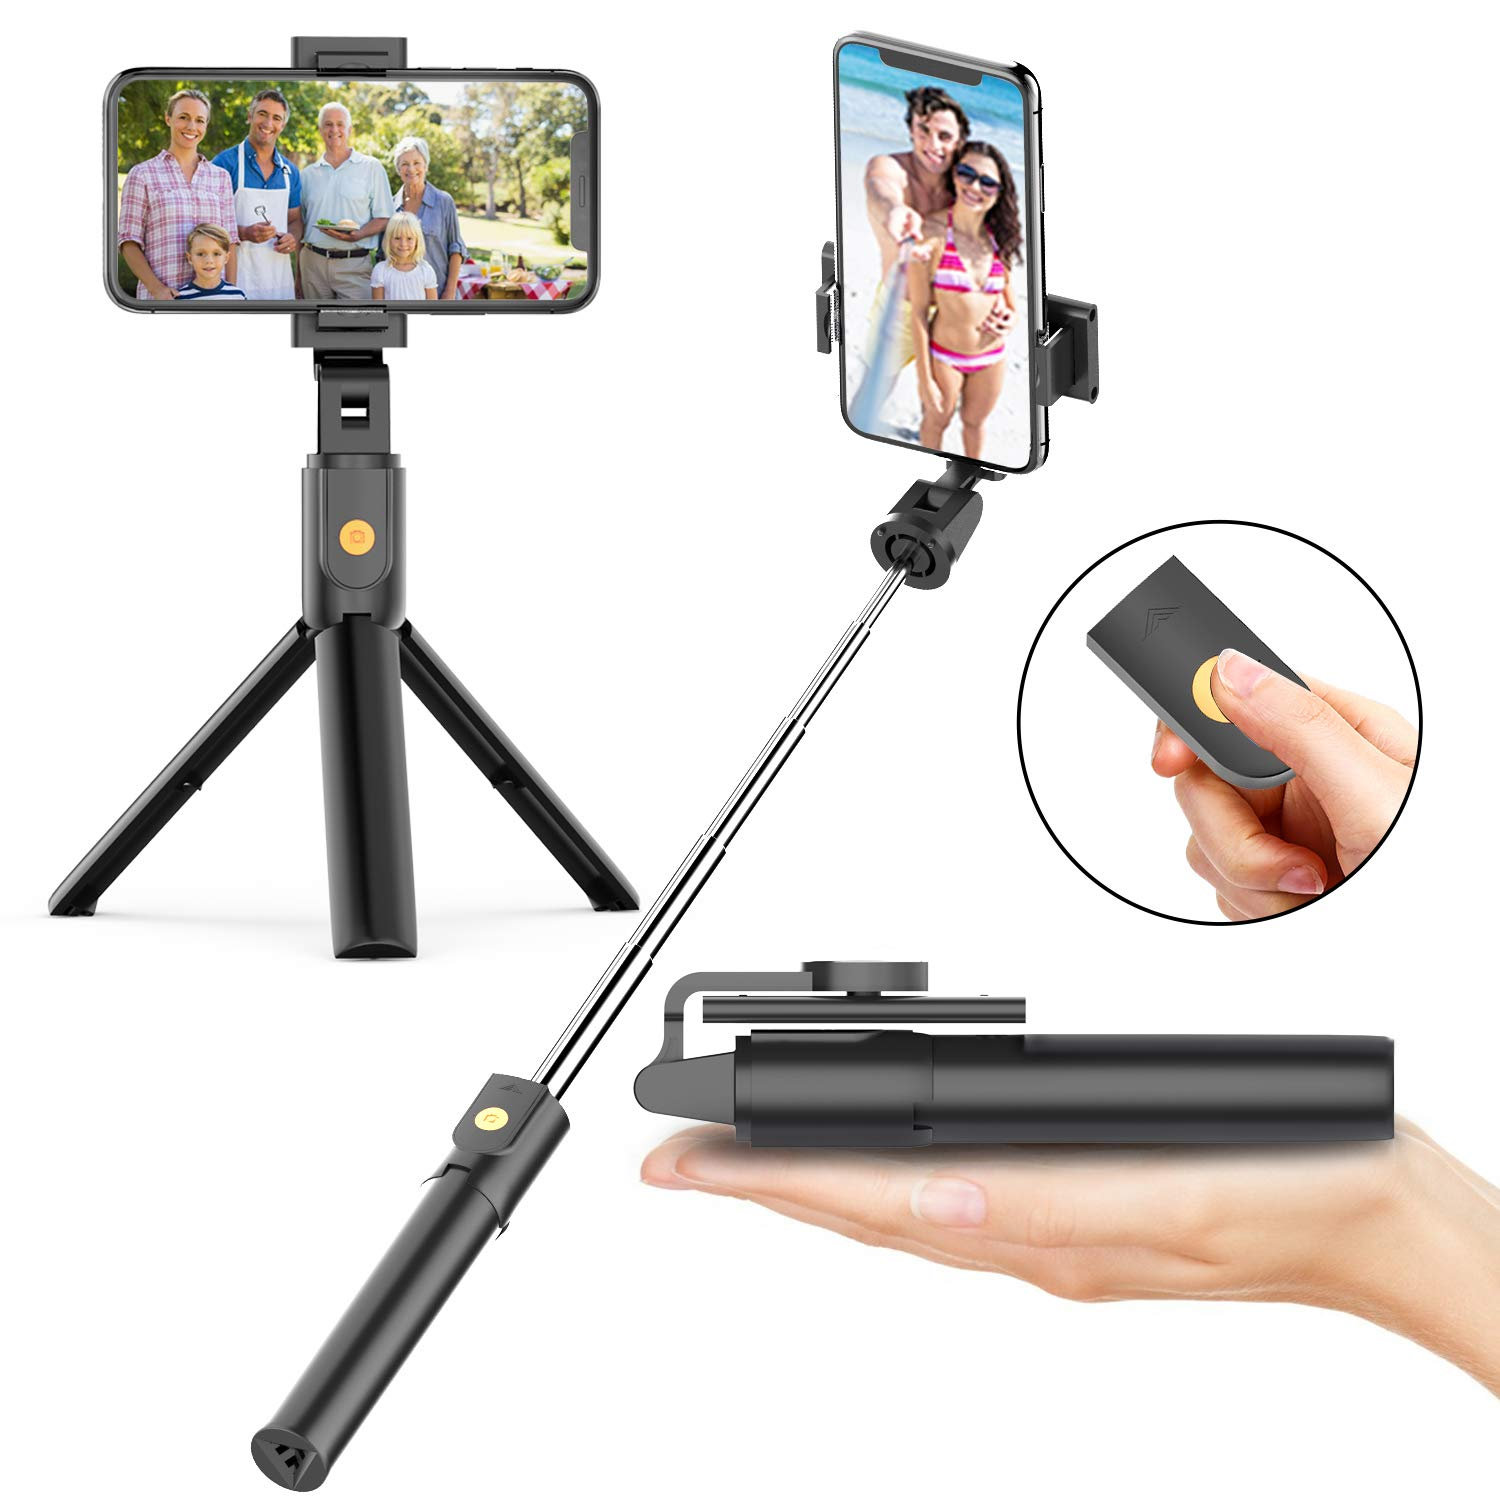 Selfie Stick Tripod with Bluetooth Wireless Remote, 3 in 1 Extendable Selfie Stick with Tripod Stand for iPhone X XR XS MAX 7 8 Plus,Galaxy S9 Plus S8 Plus Note8 by Appolab